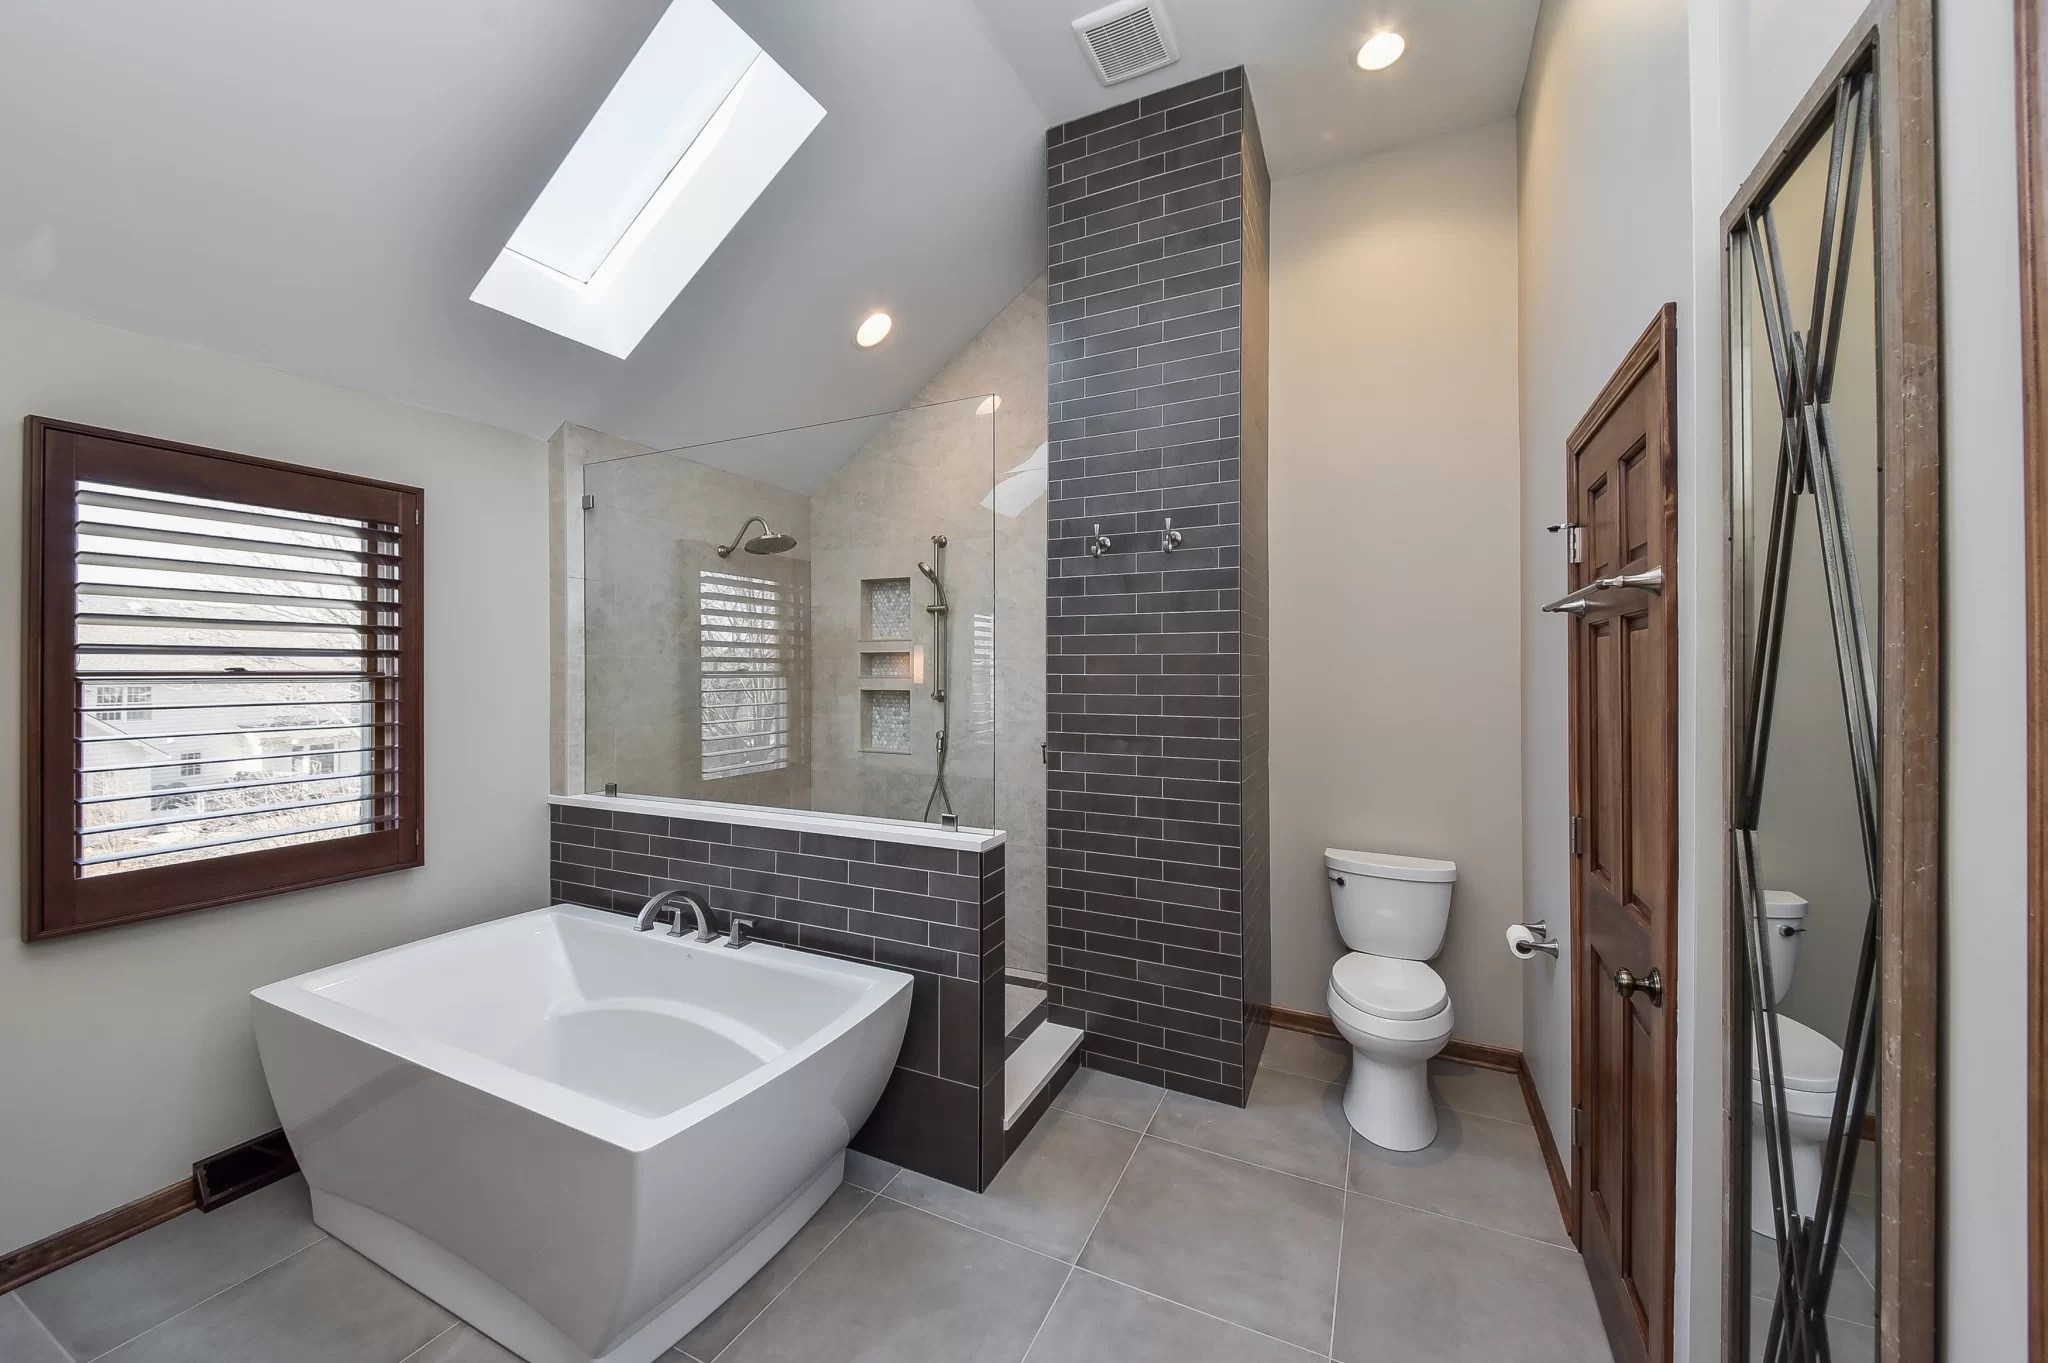 14 Bathroom Design Trends For 2020   Home Remodeling ... on Small Bathroom Ideas 2020 id=29744